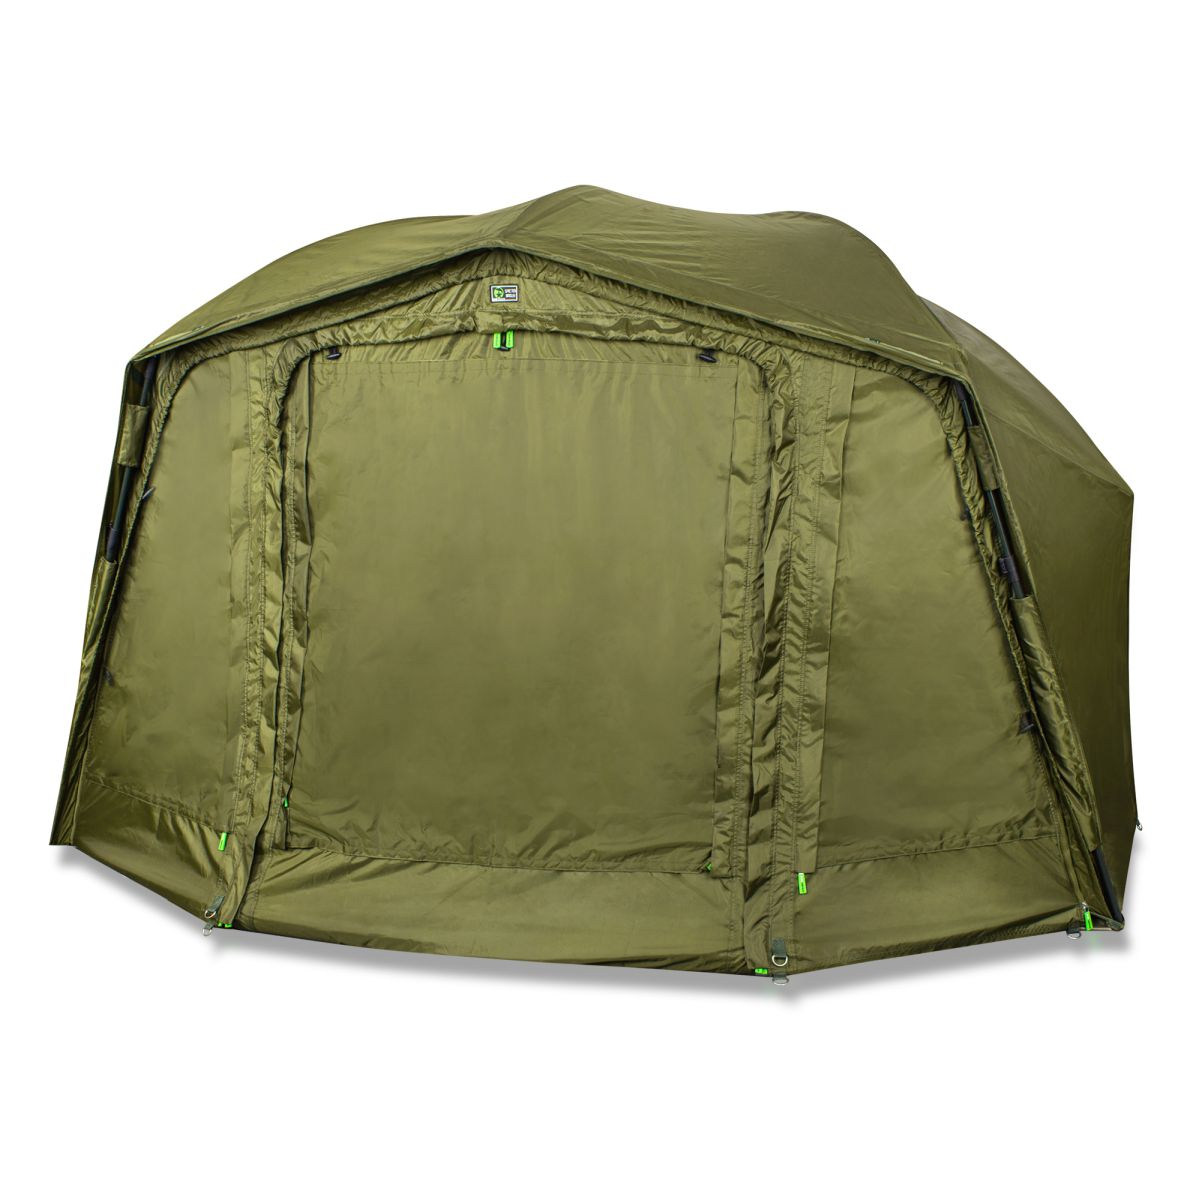 Brolly STARFISHING Specter G2